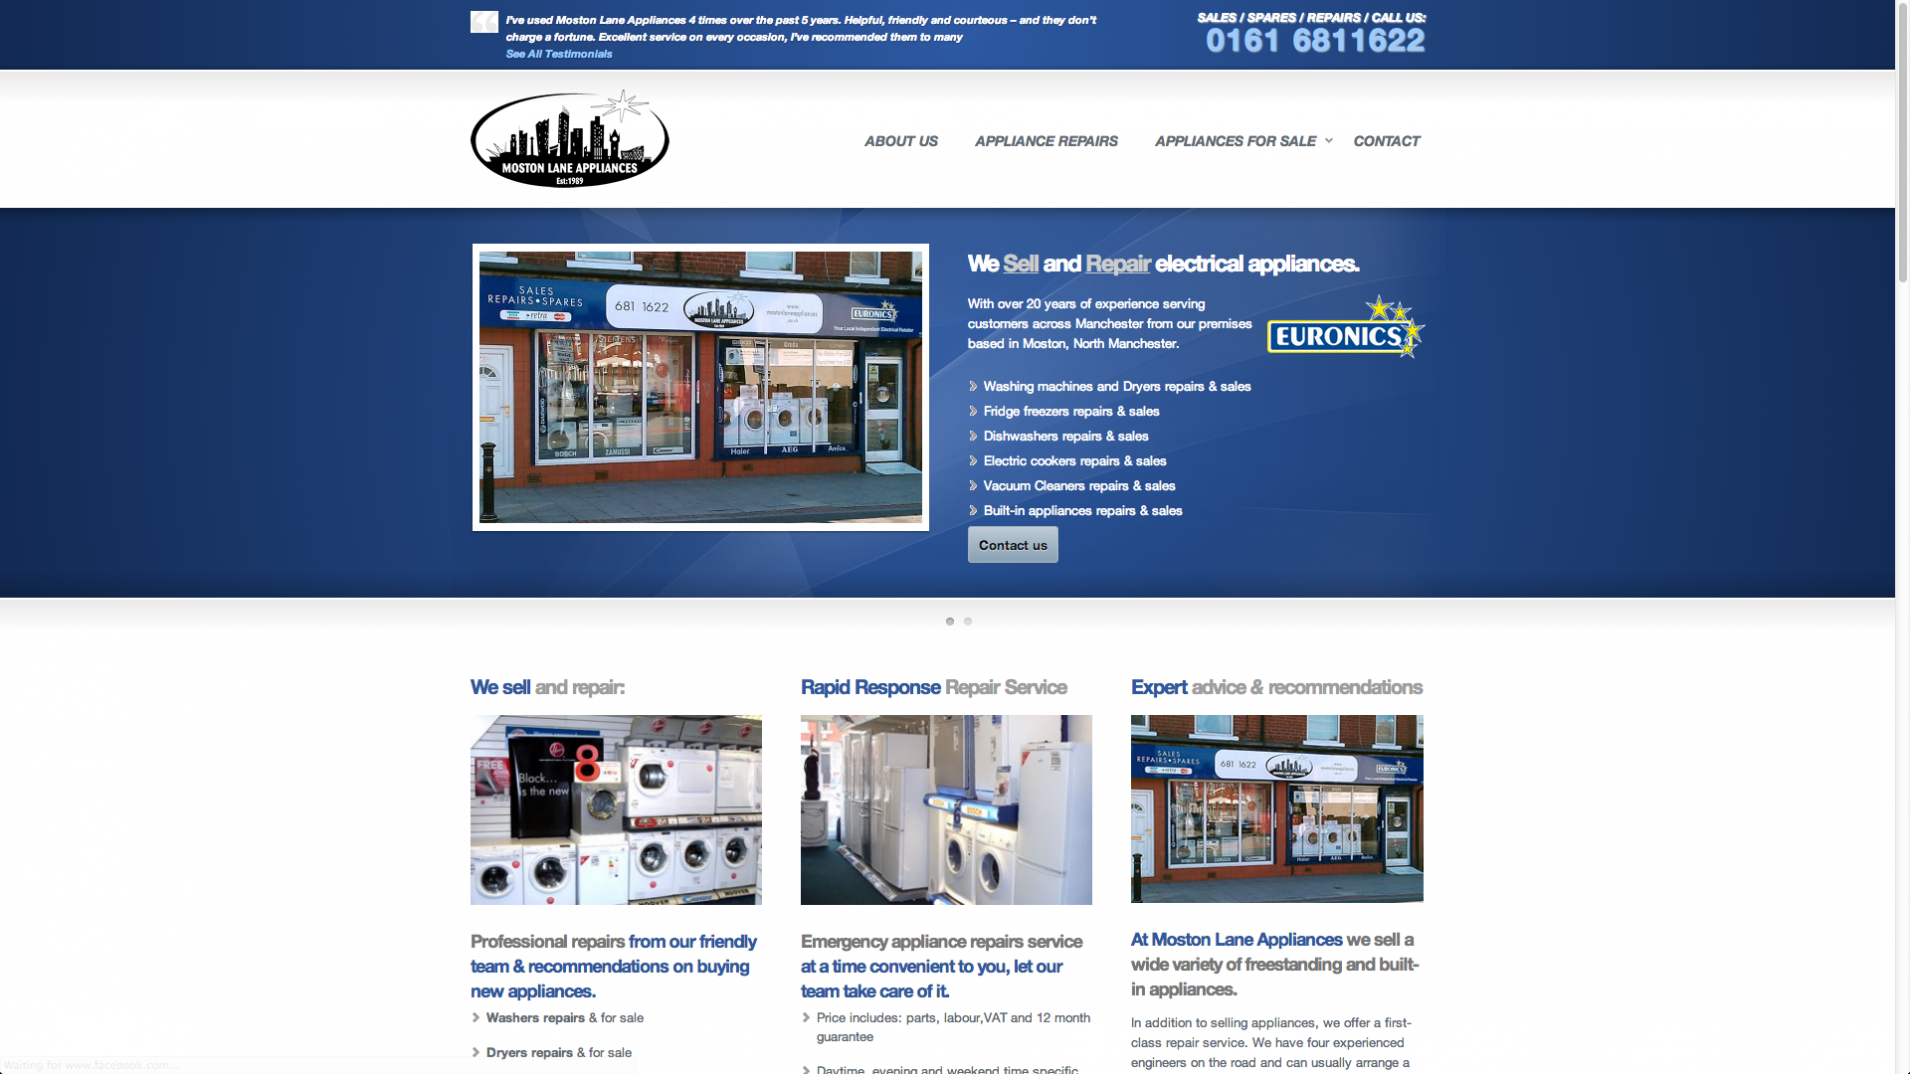 Screen Shot 2013 12 23 at 16.31.05 - Webdesign for appliance repairs company